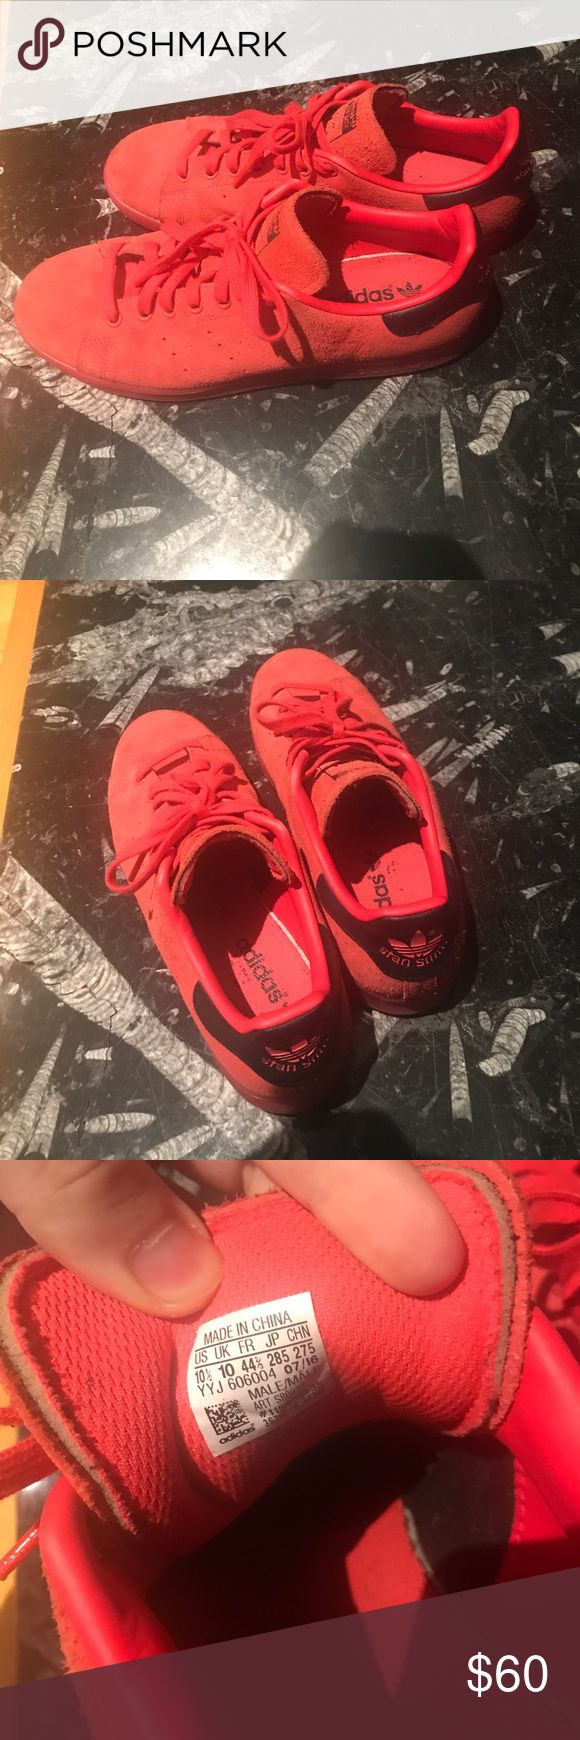 """Adidas Stan Smith Red suede stan smiths, very comfortable and durable. No original box. If you request I can probably use a generic box. Price is negotiable (somewhat). Color is """"shock red"""" Adidas Shoes Sneakers"""